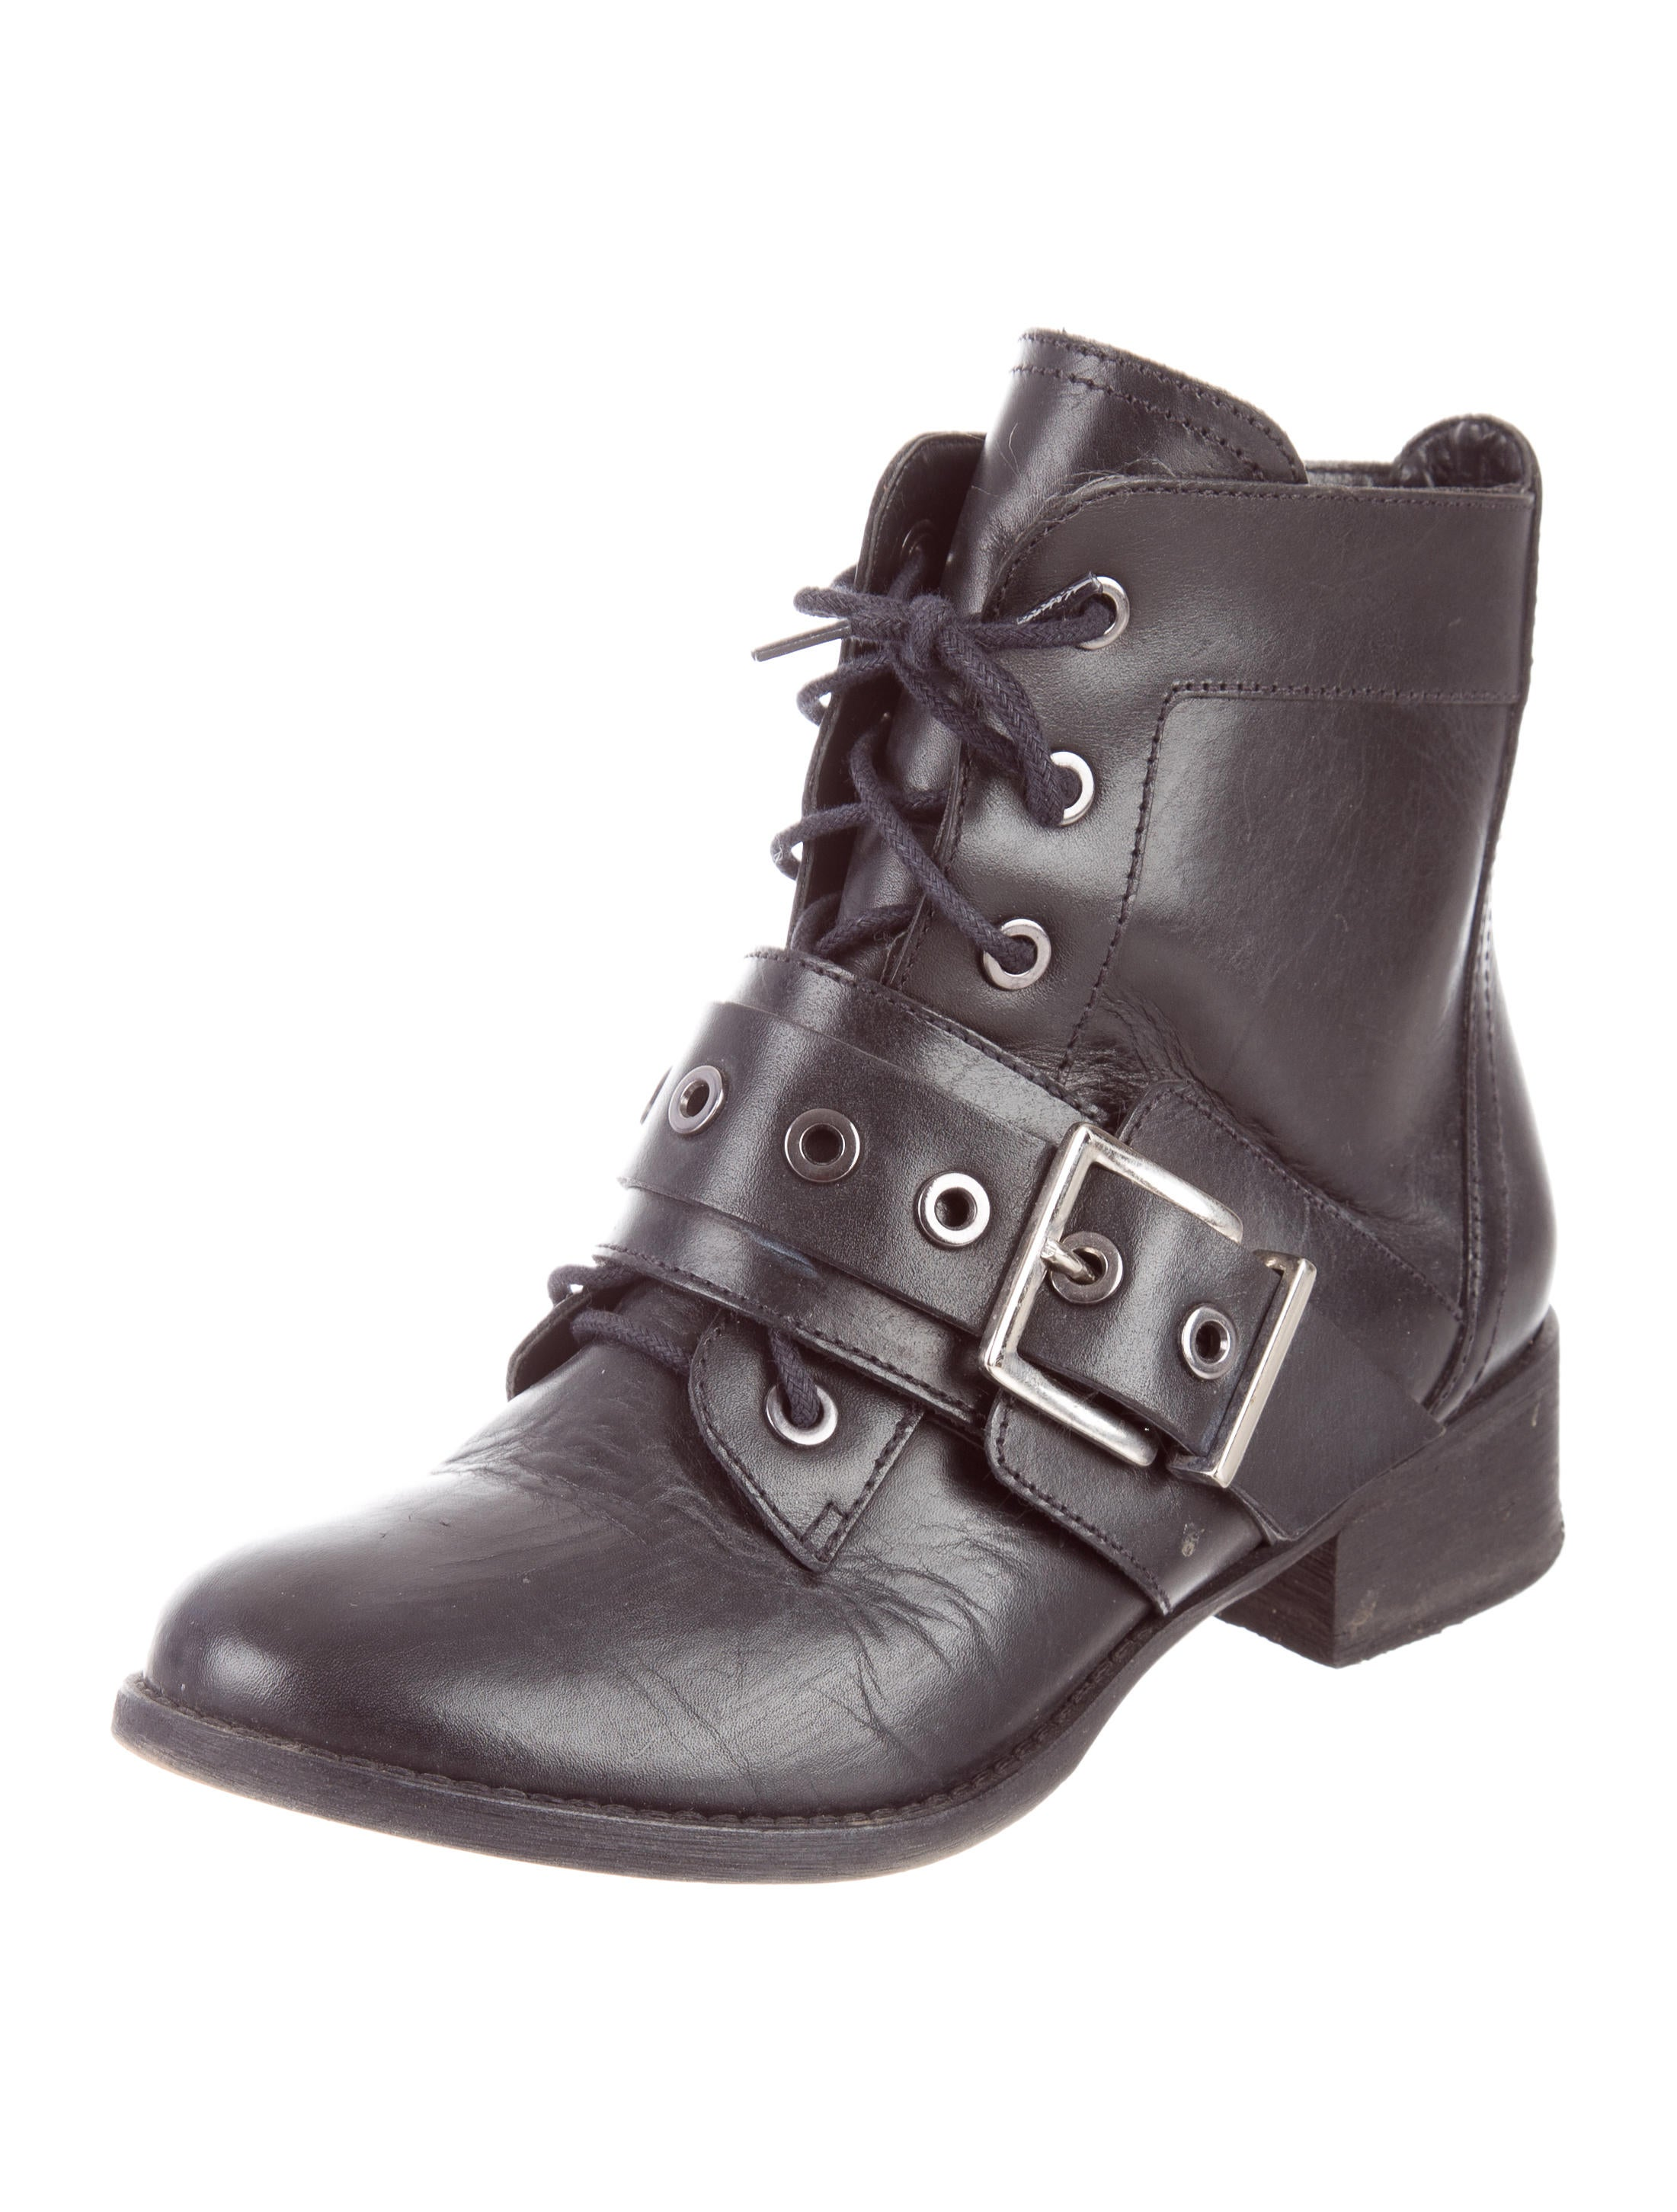 schutz buckle ankle boots shoes w6s20360 the realreal